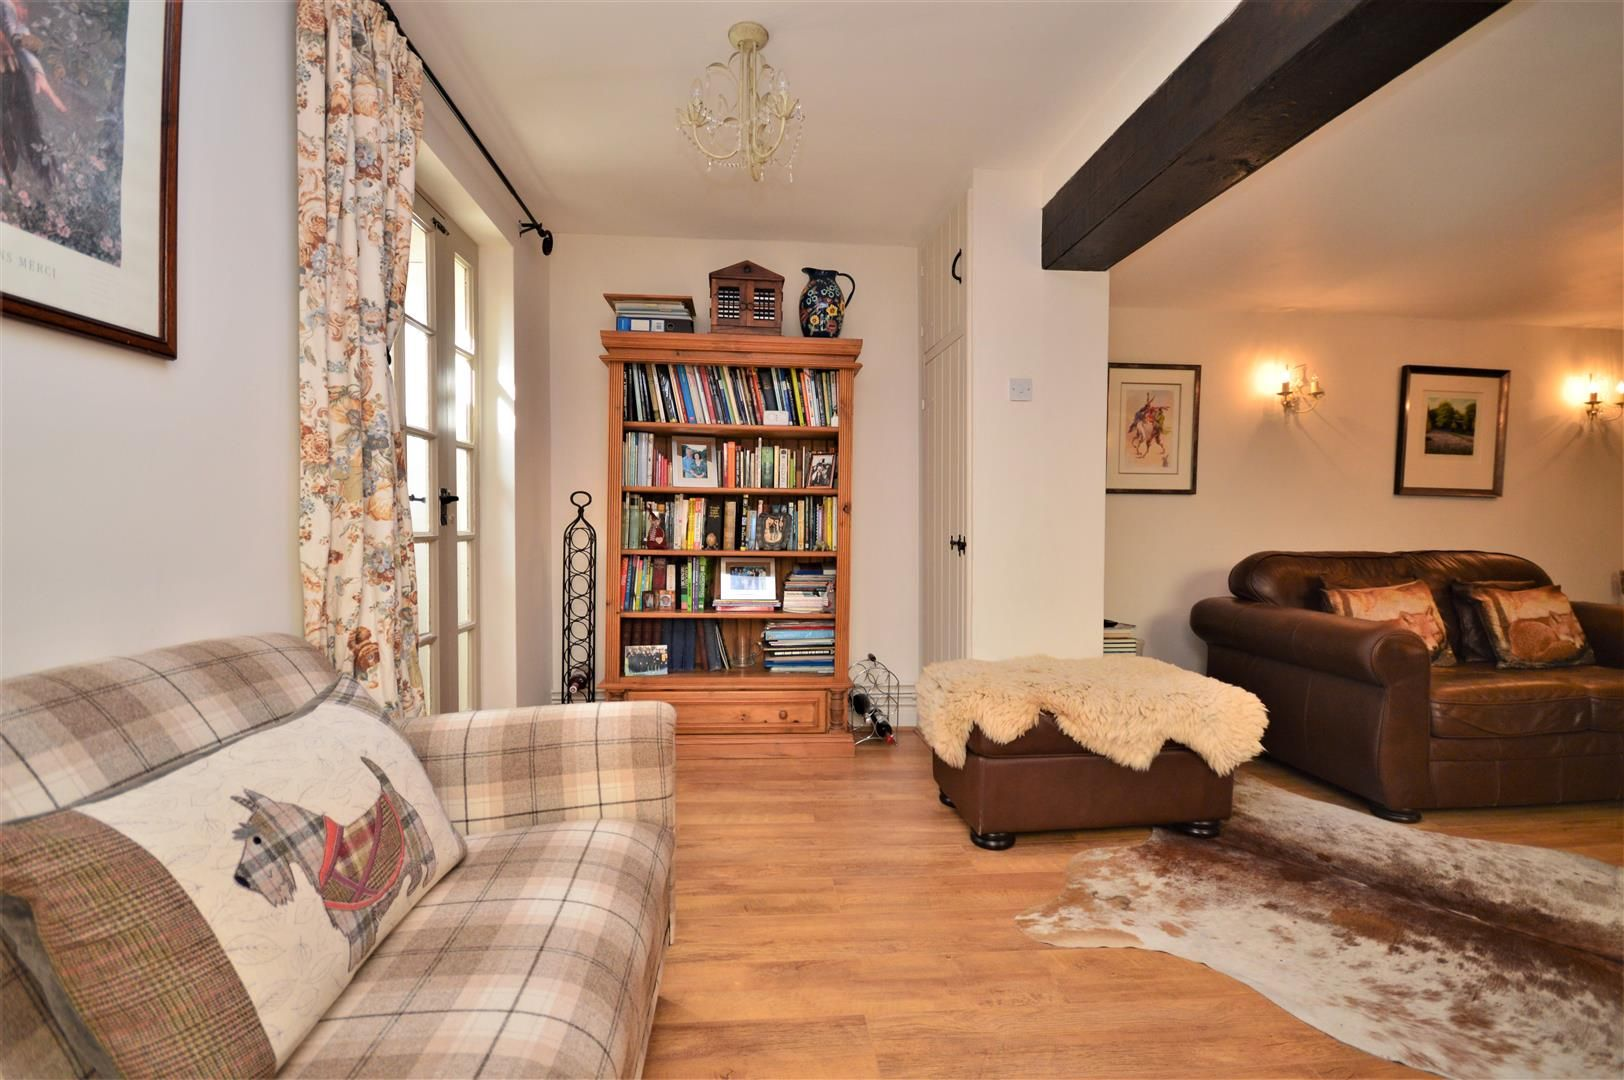 3 bed semi-detached for sale in Stretton Sugwas  - Property Image 9